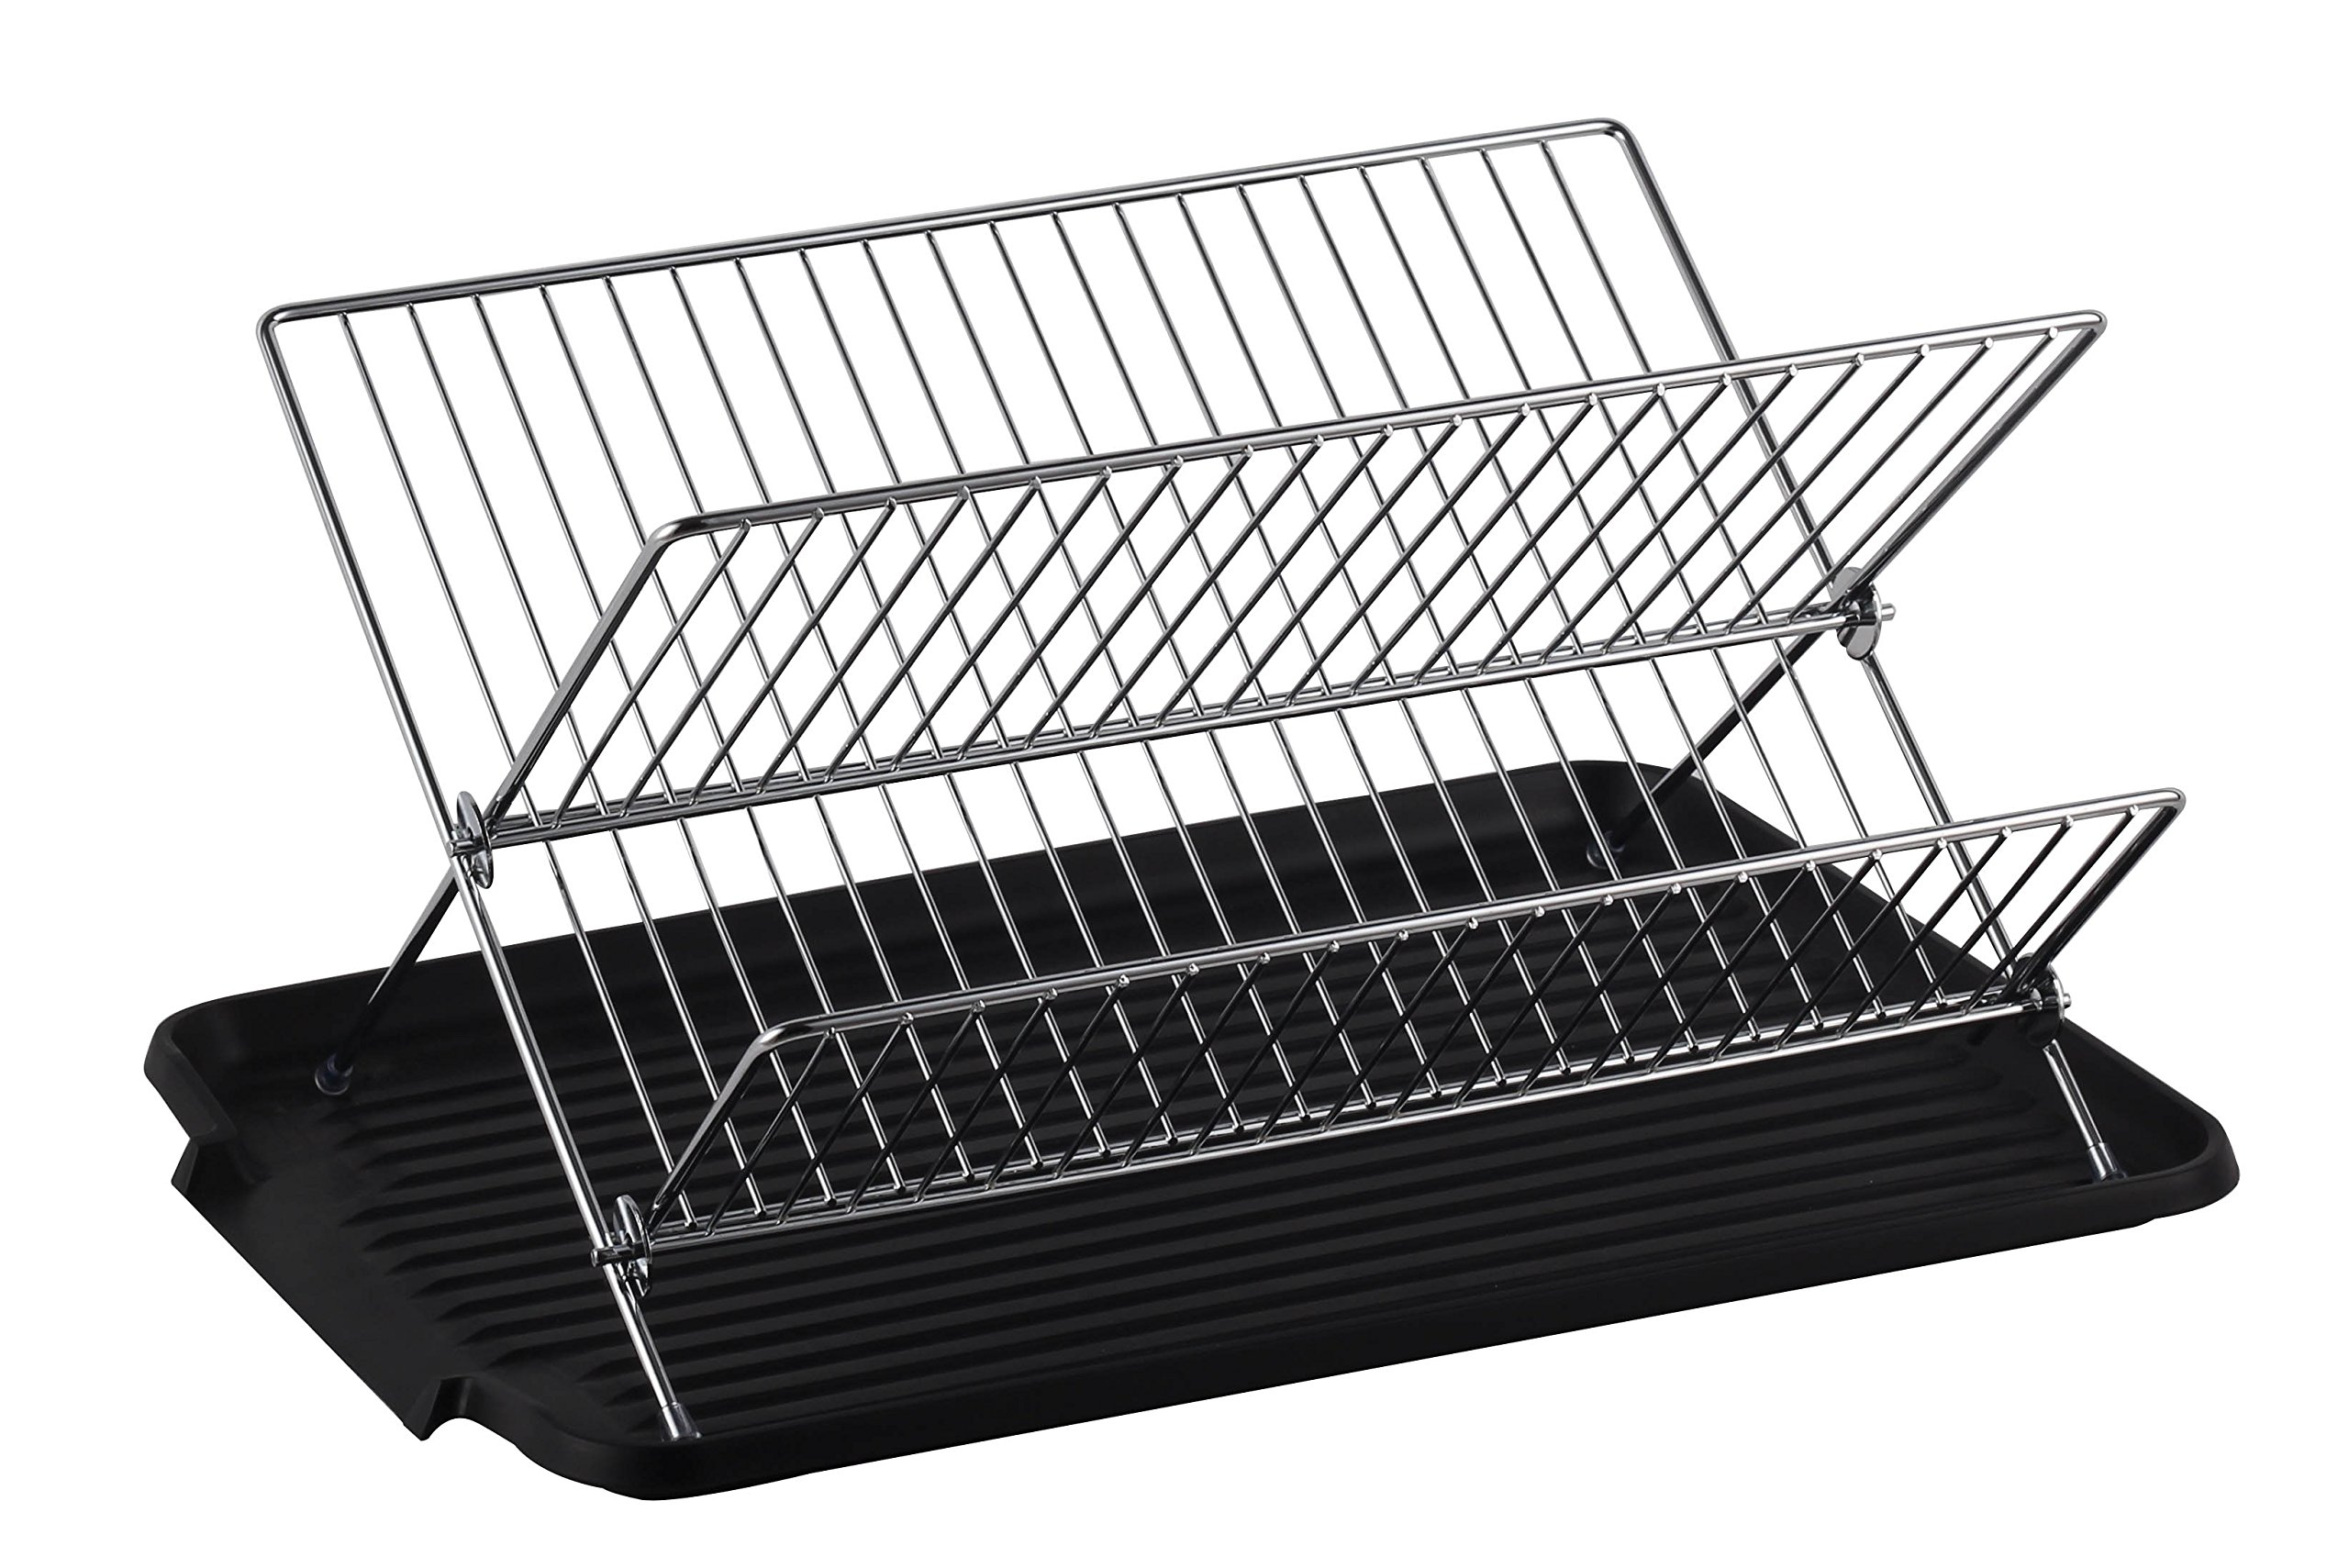 Deluxe Chrome-plated Steel Foldable X Shape 2-tier Shelf Small Dish Drainers with Drainboard (BlackII)